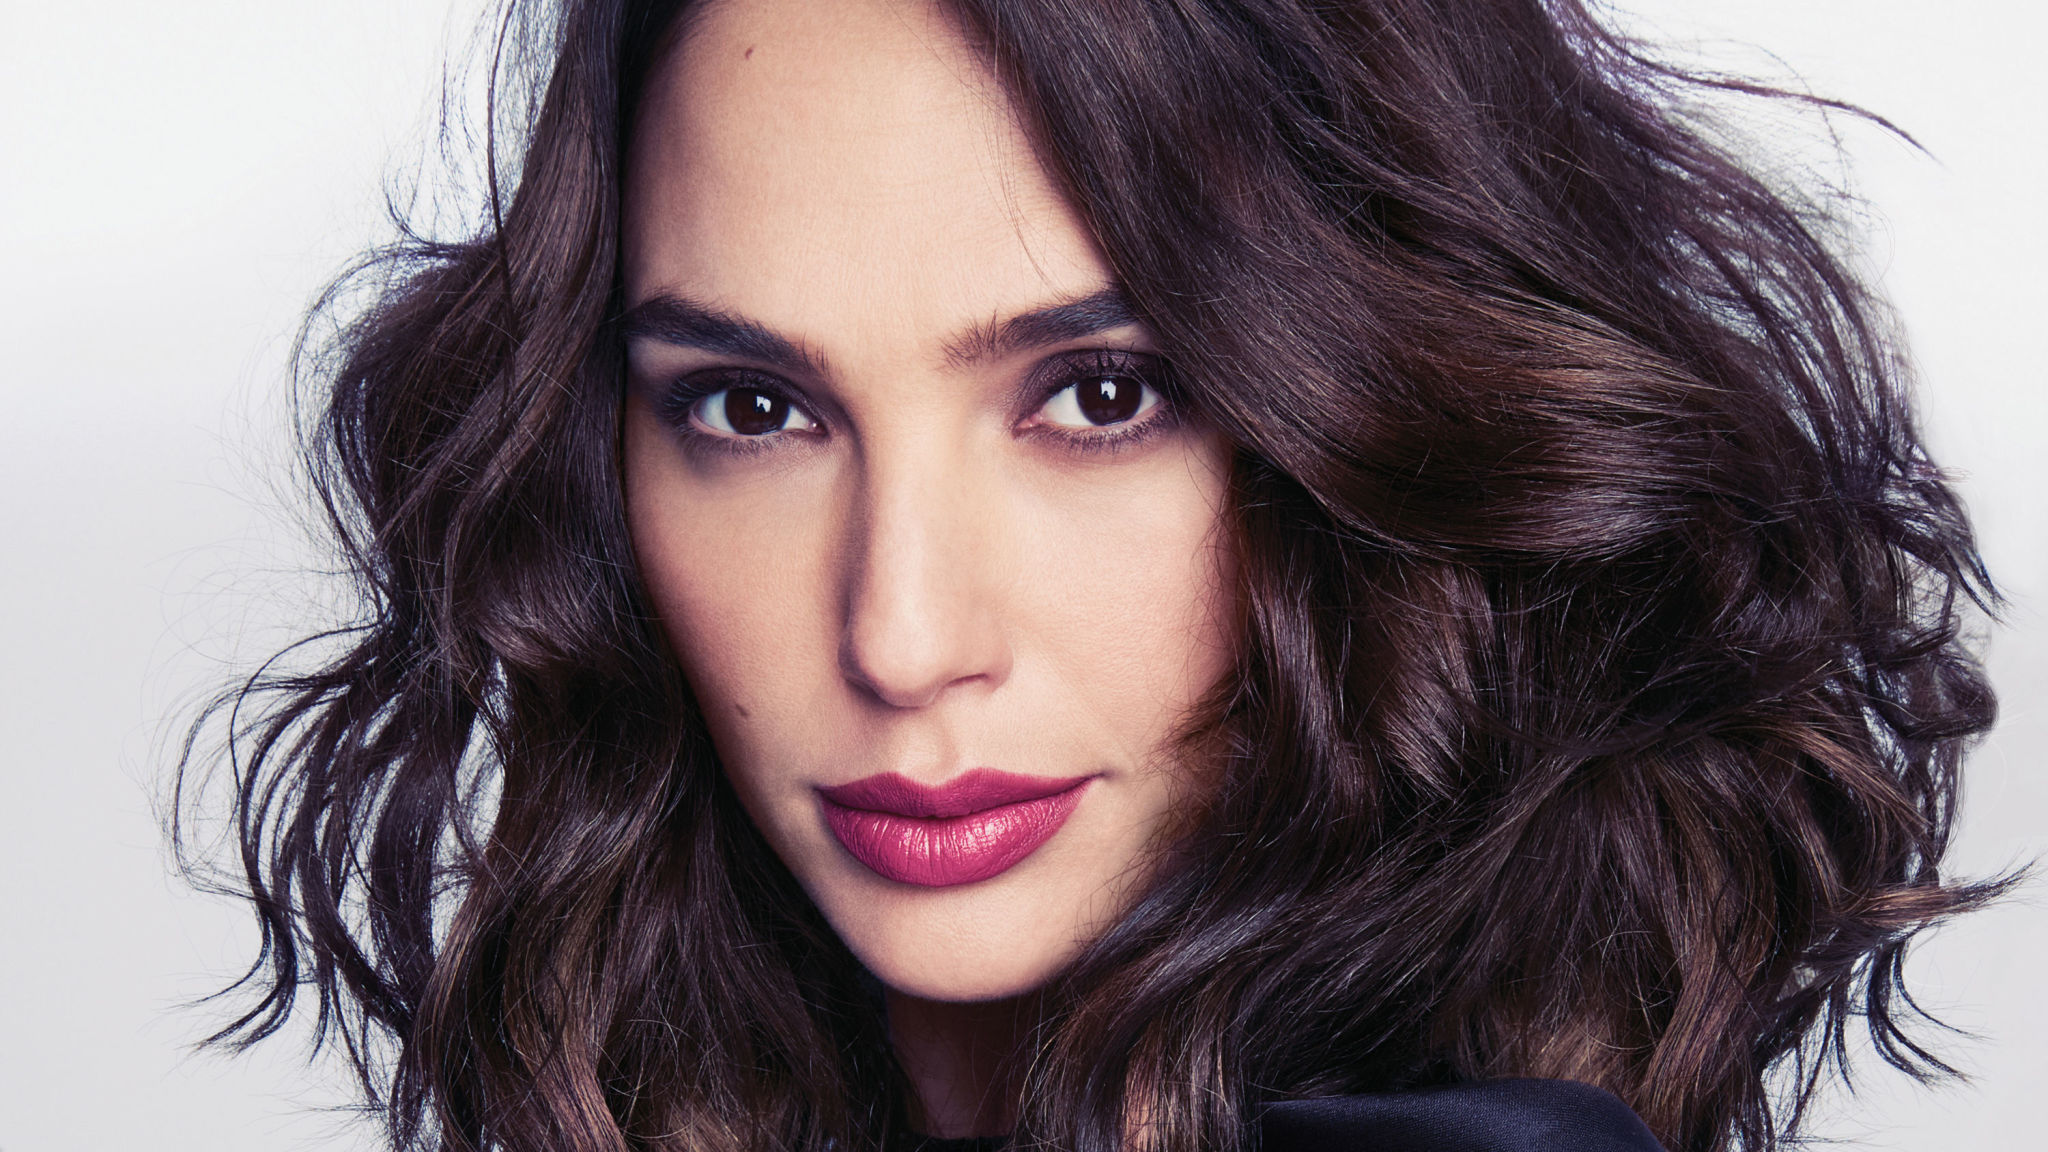 Gal Gadot Hair - Gal Gadot Net Worth, Pics, Wallpapers, Career and Biography